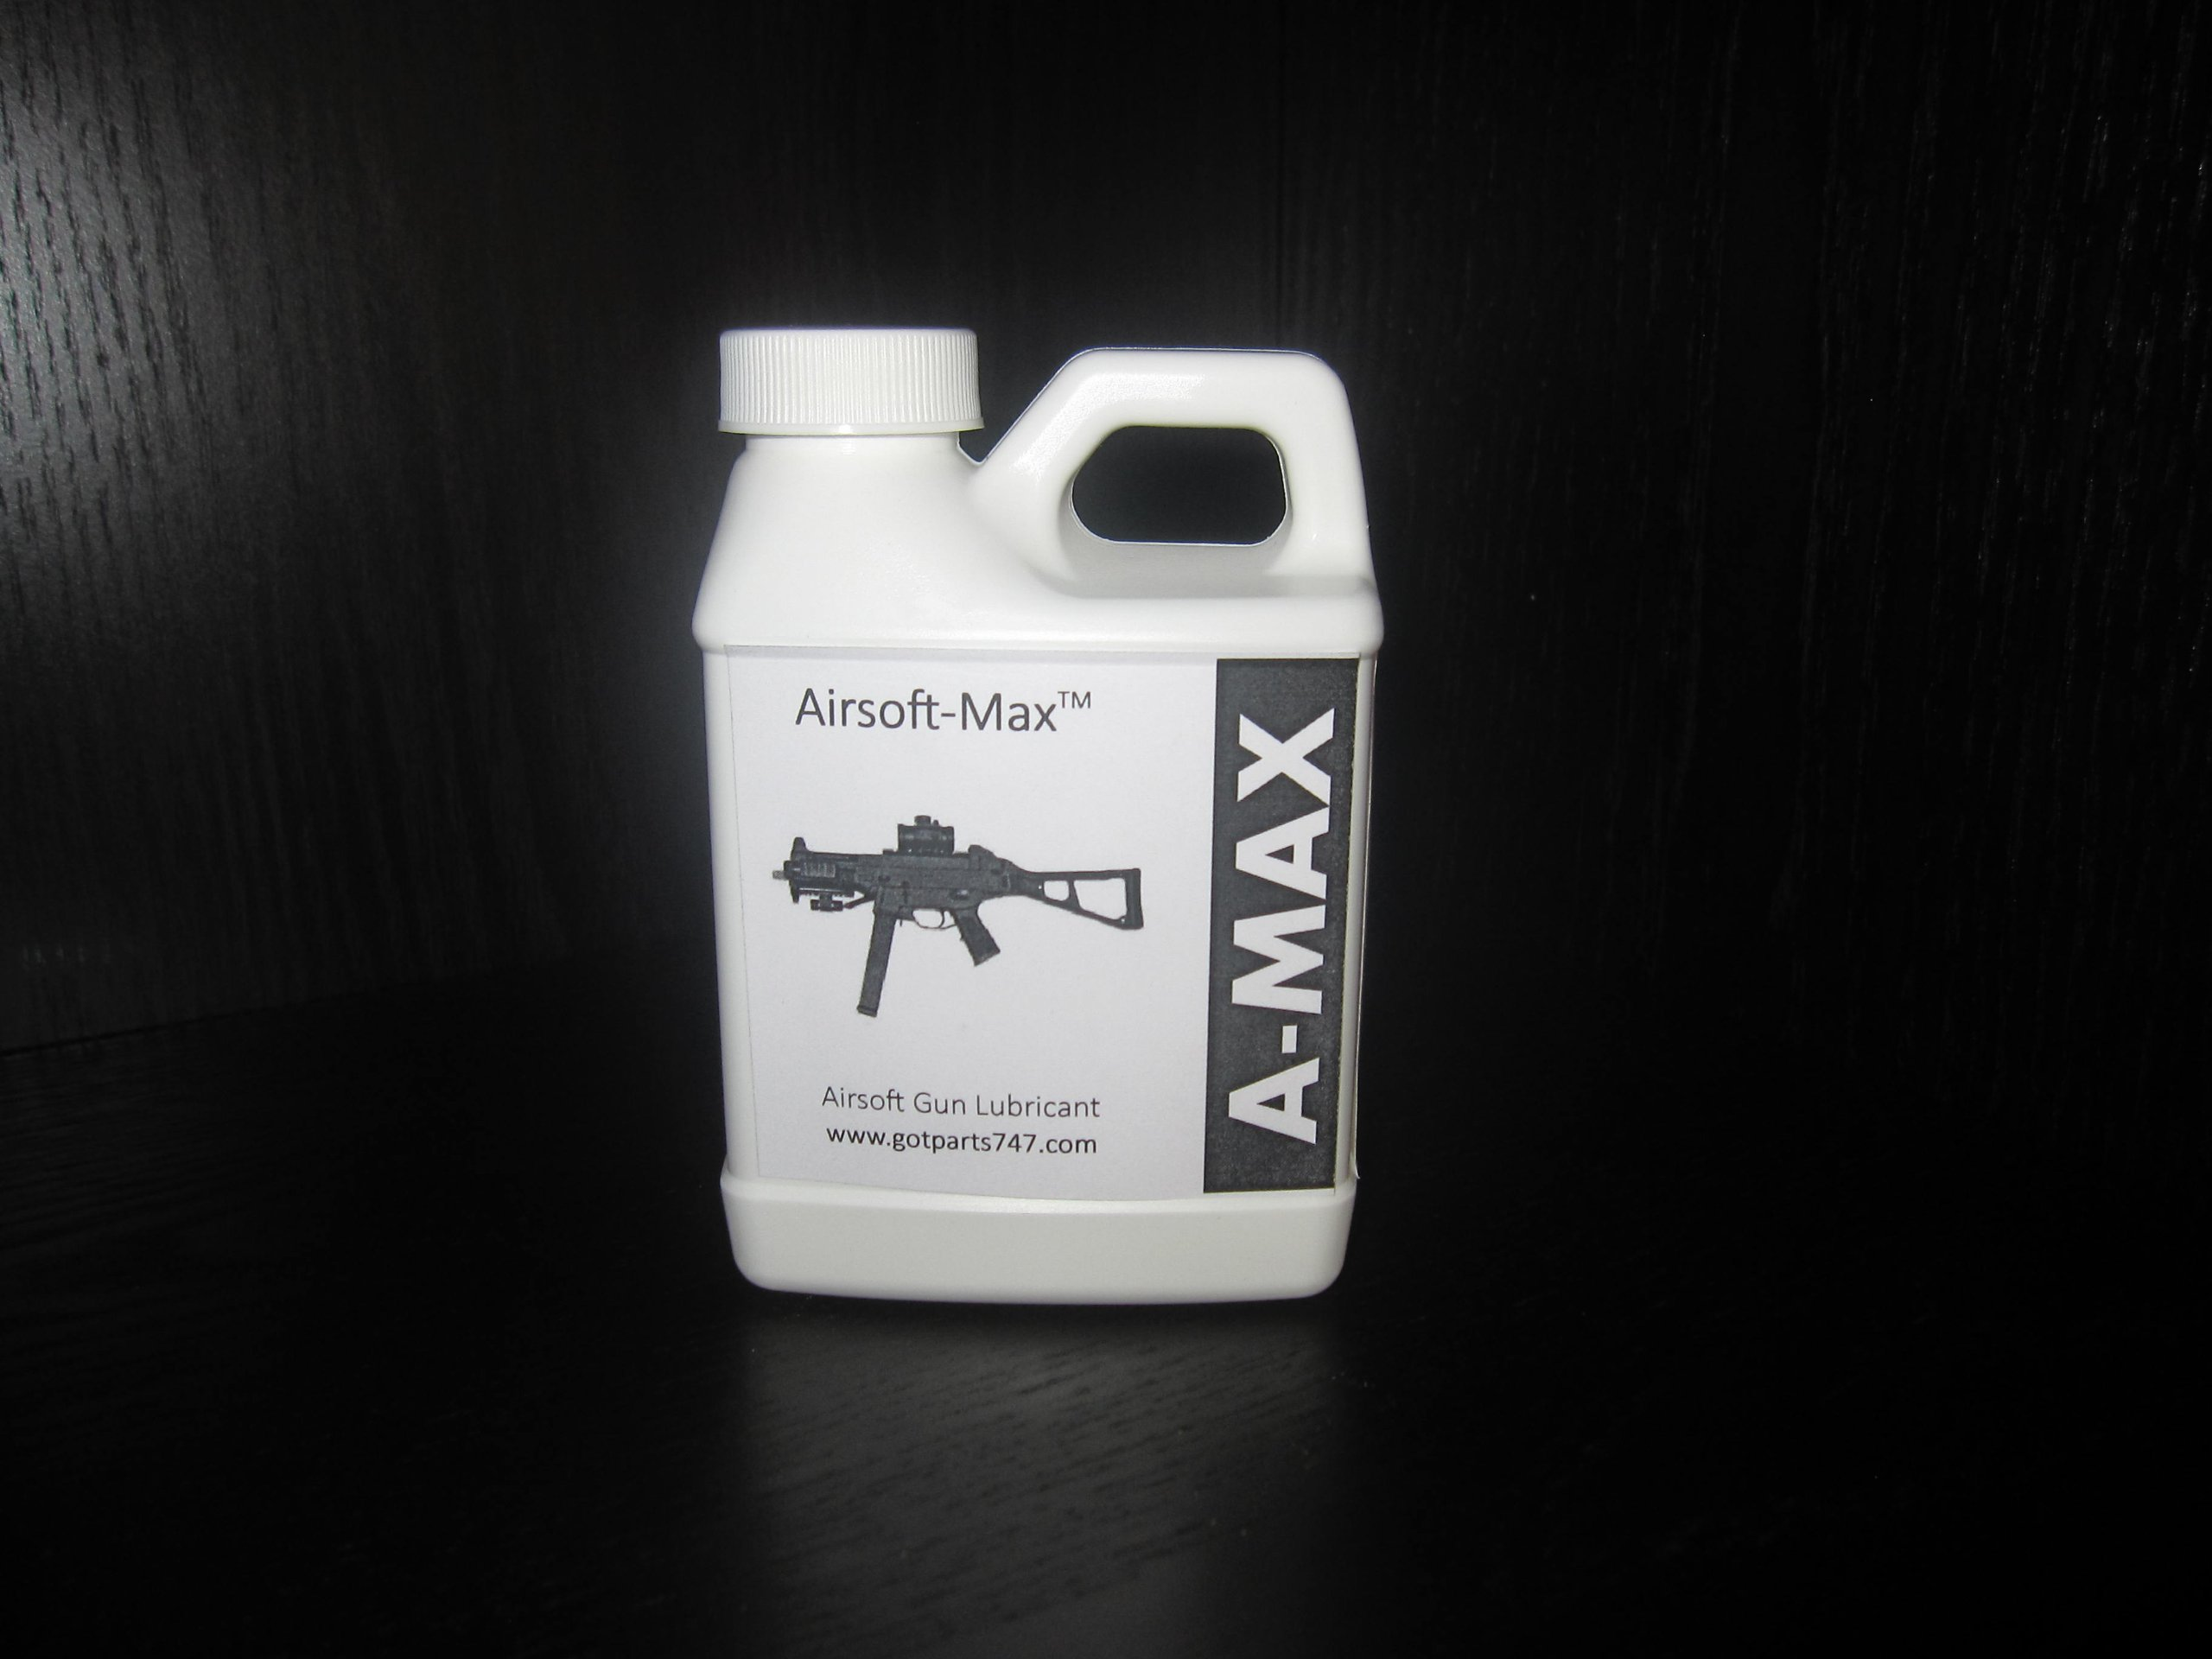 FREE Airsoft Gun Lubricant, Pure Silicone Oil, 8.5 oz - BUY 1 GET 1 FREE